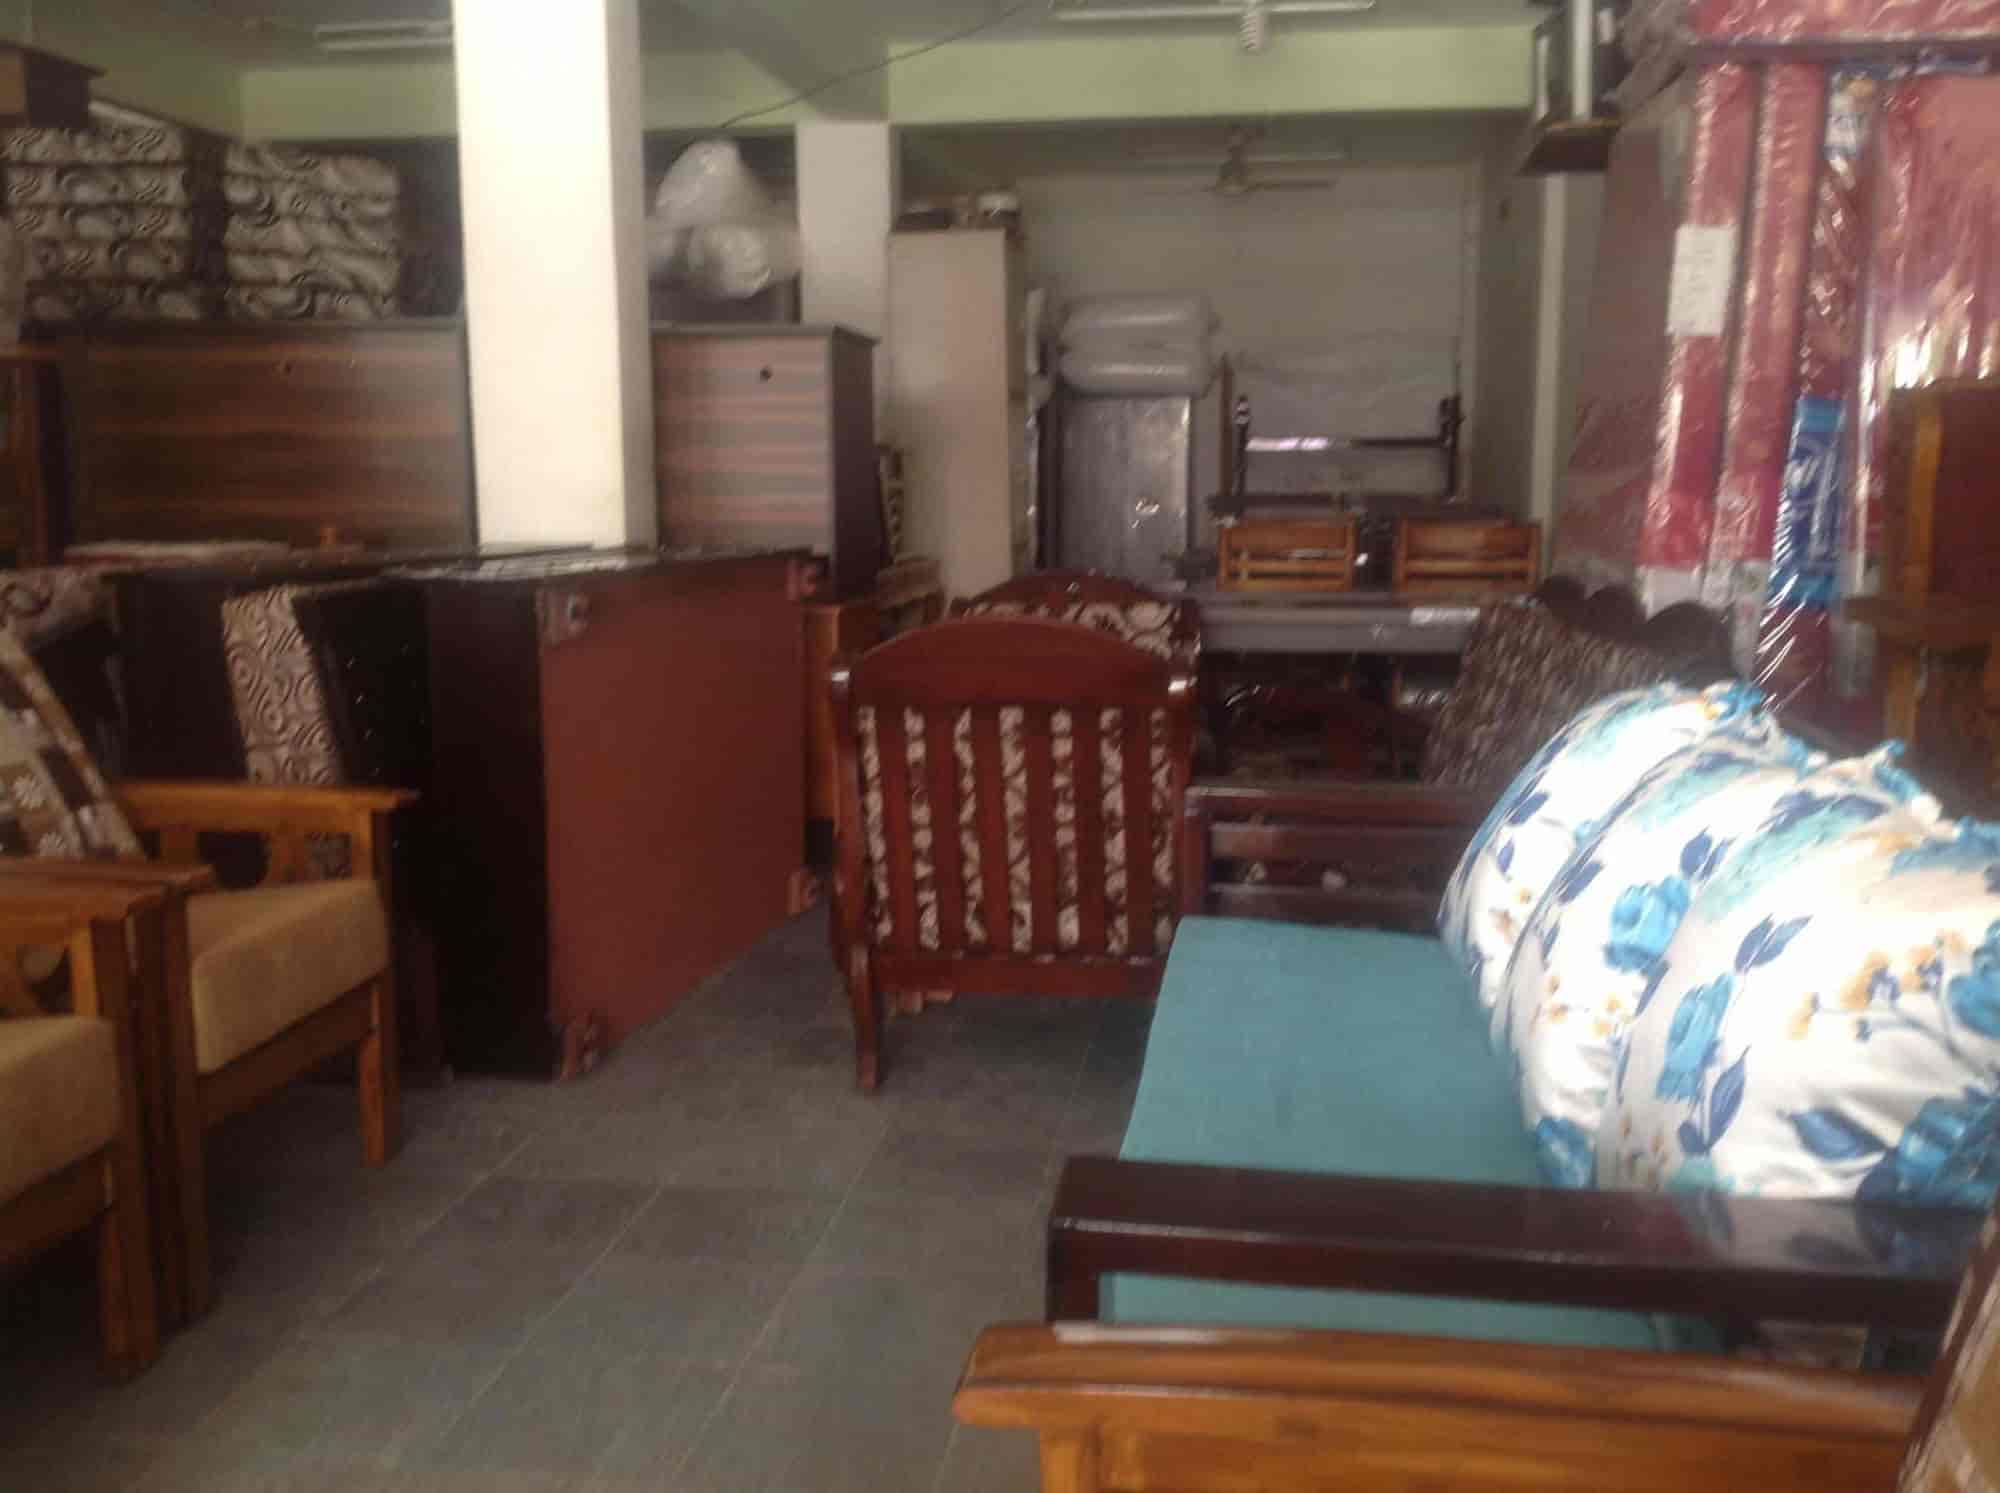 Modern furniture photos safilguda malkajgiri hyderabad furniture dealers